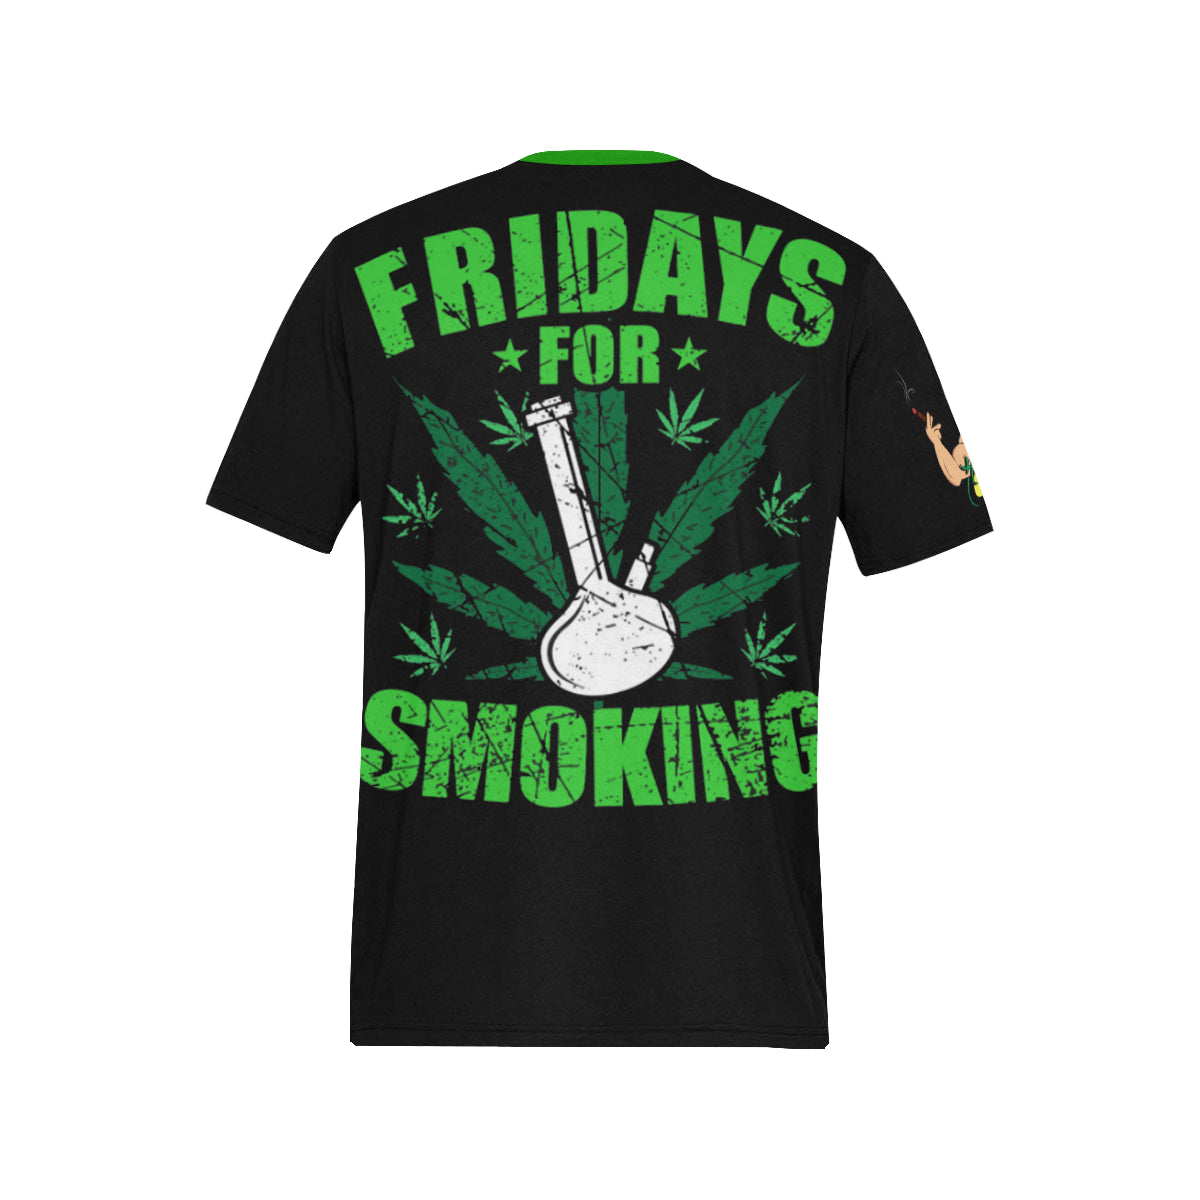 Friday's for Smoking